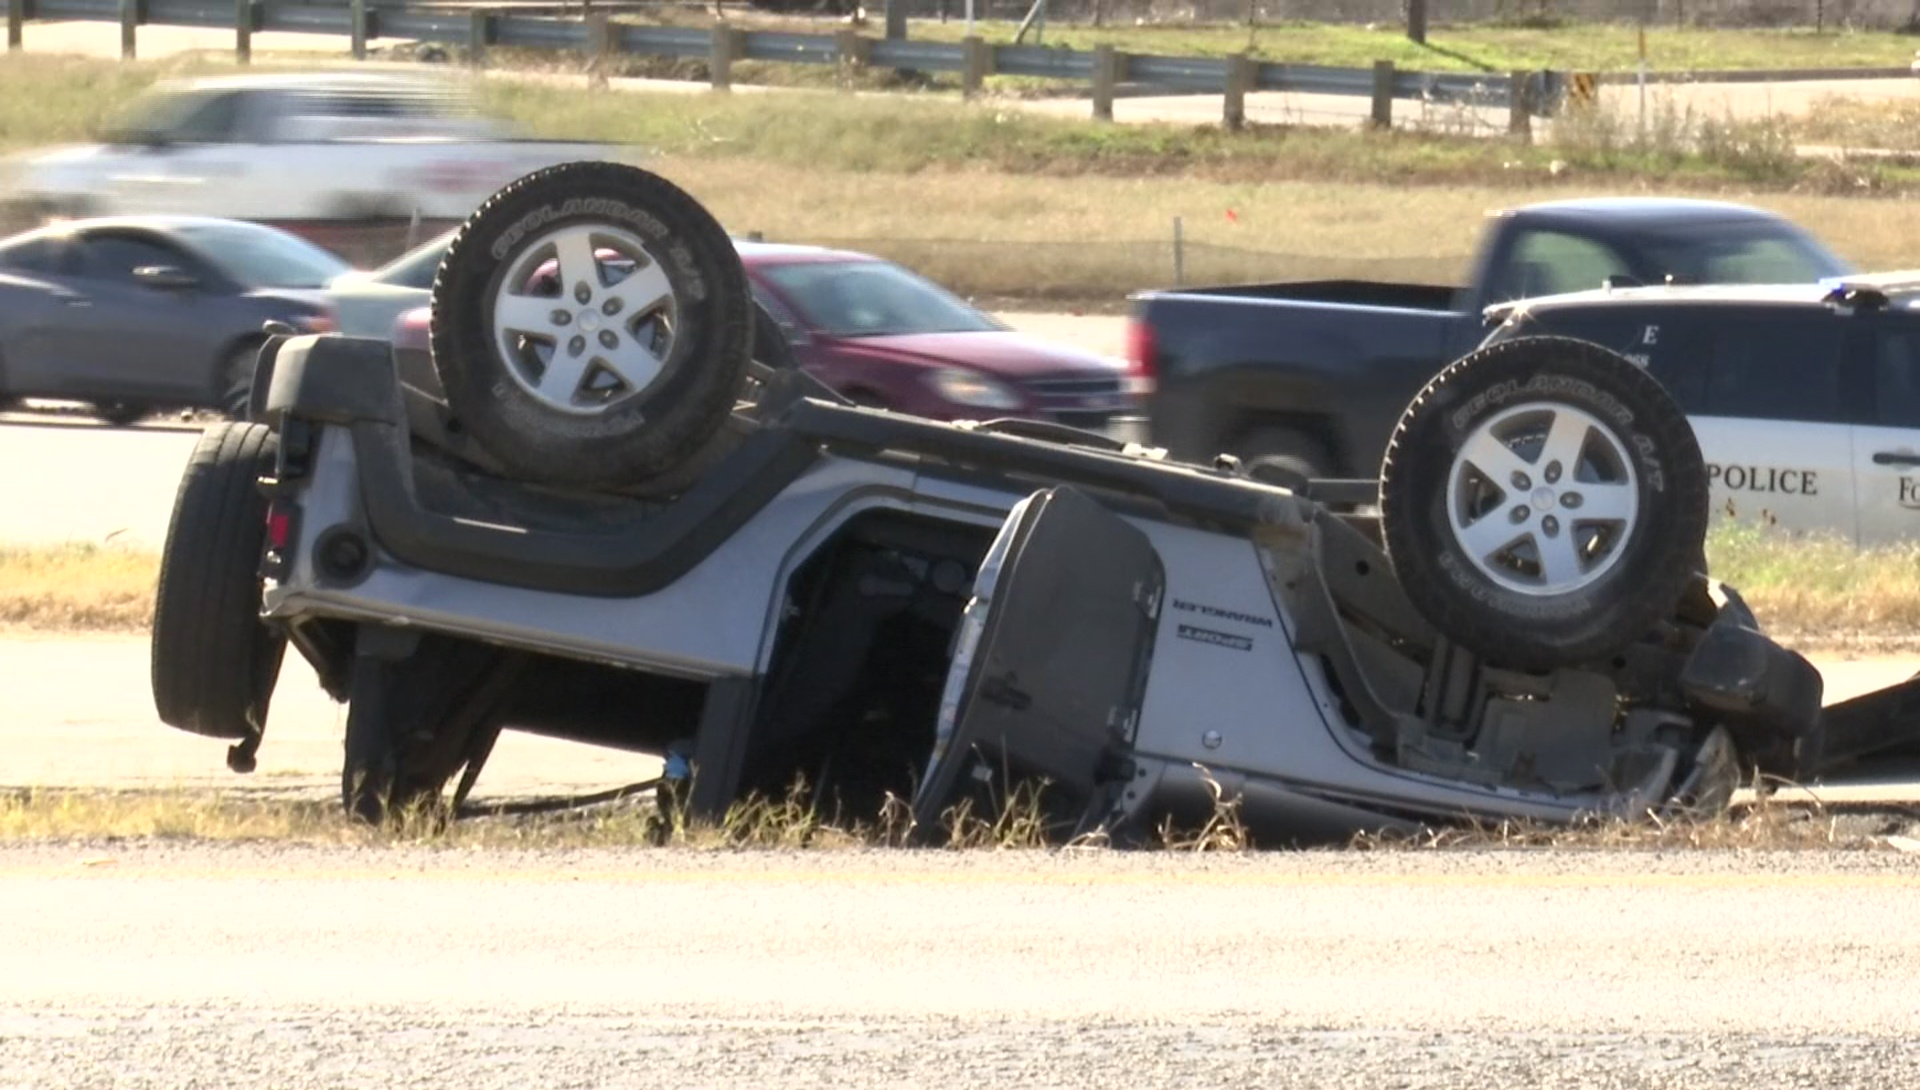 Rollover Accident at 820 South - Fort Worth news - NewsLocker